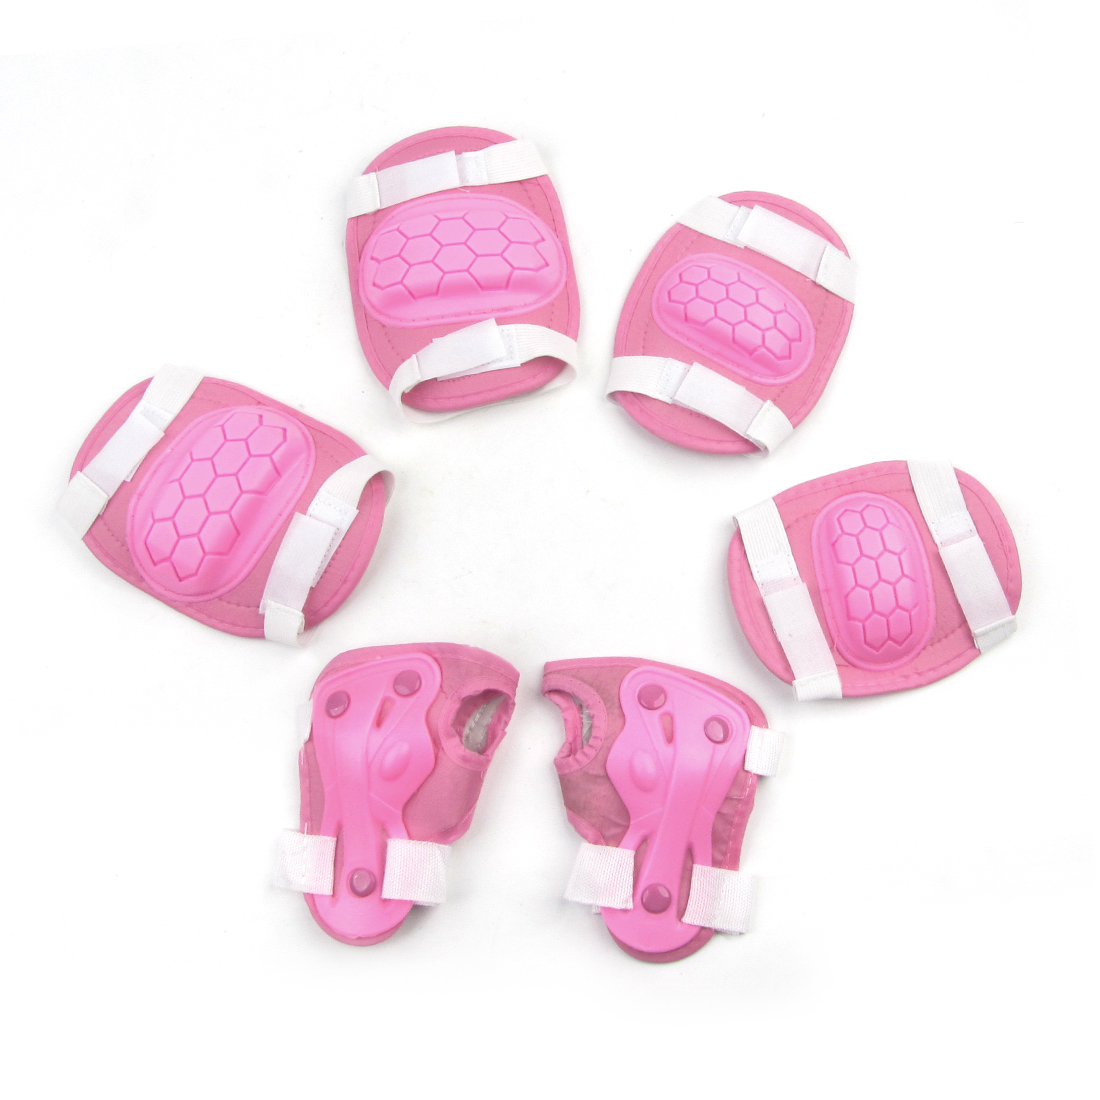 Set 6 in 1 Detachable Closure Knee Palm Elbow Protector Pink White for Kids